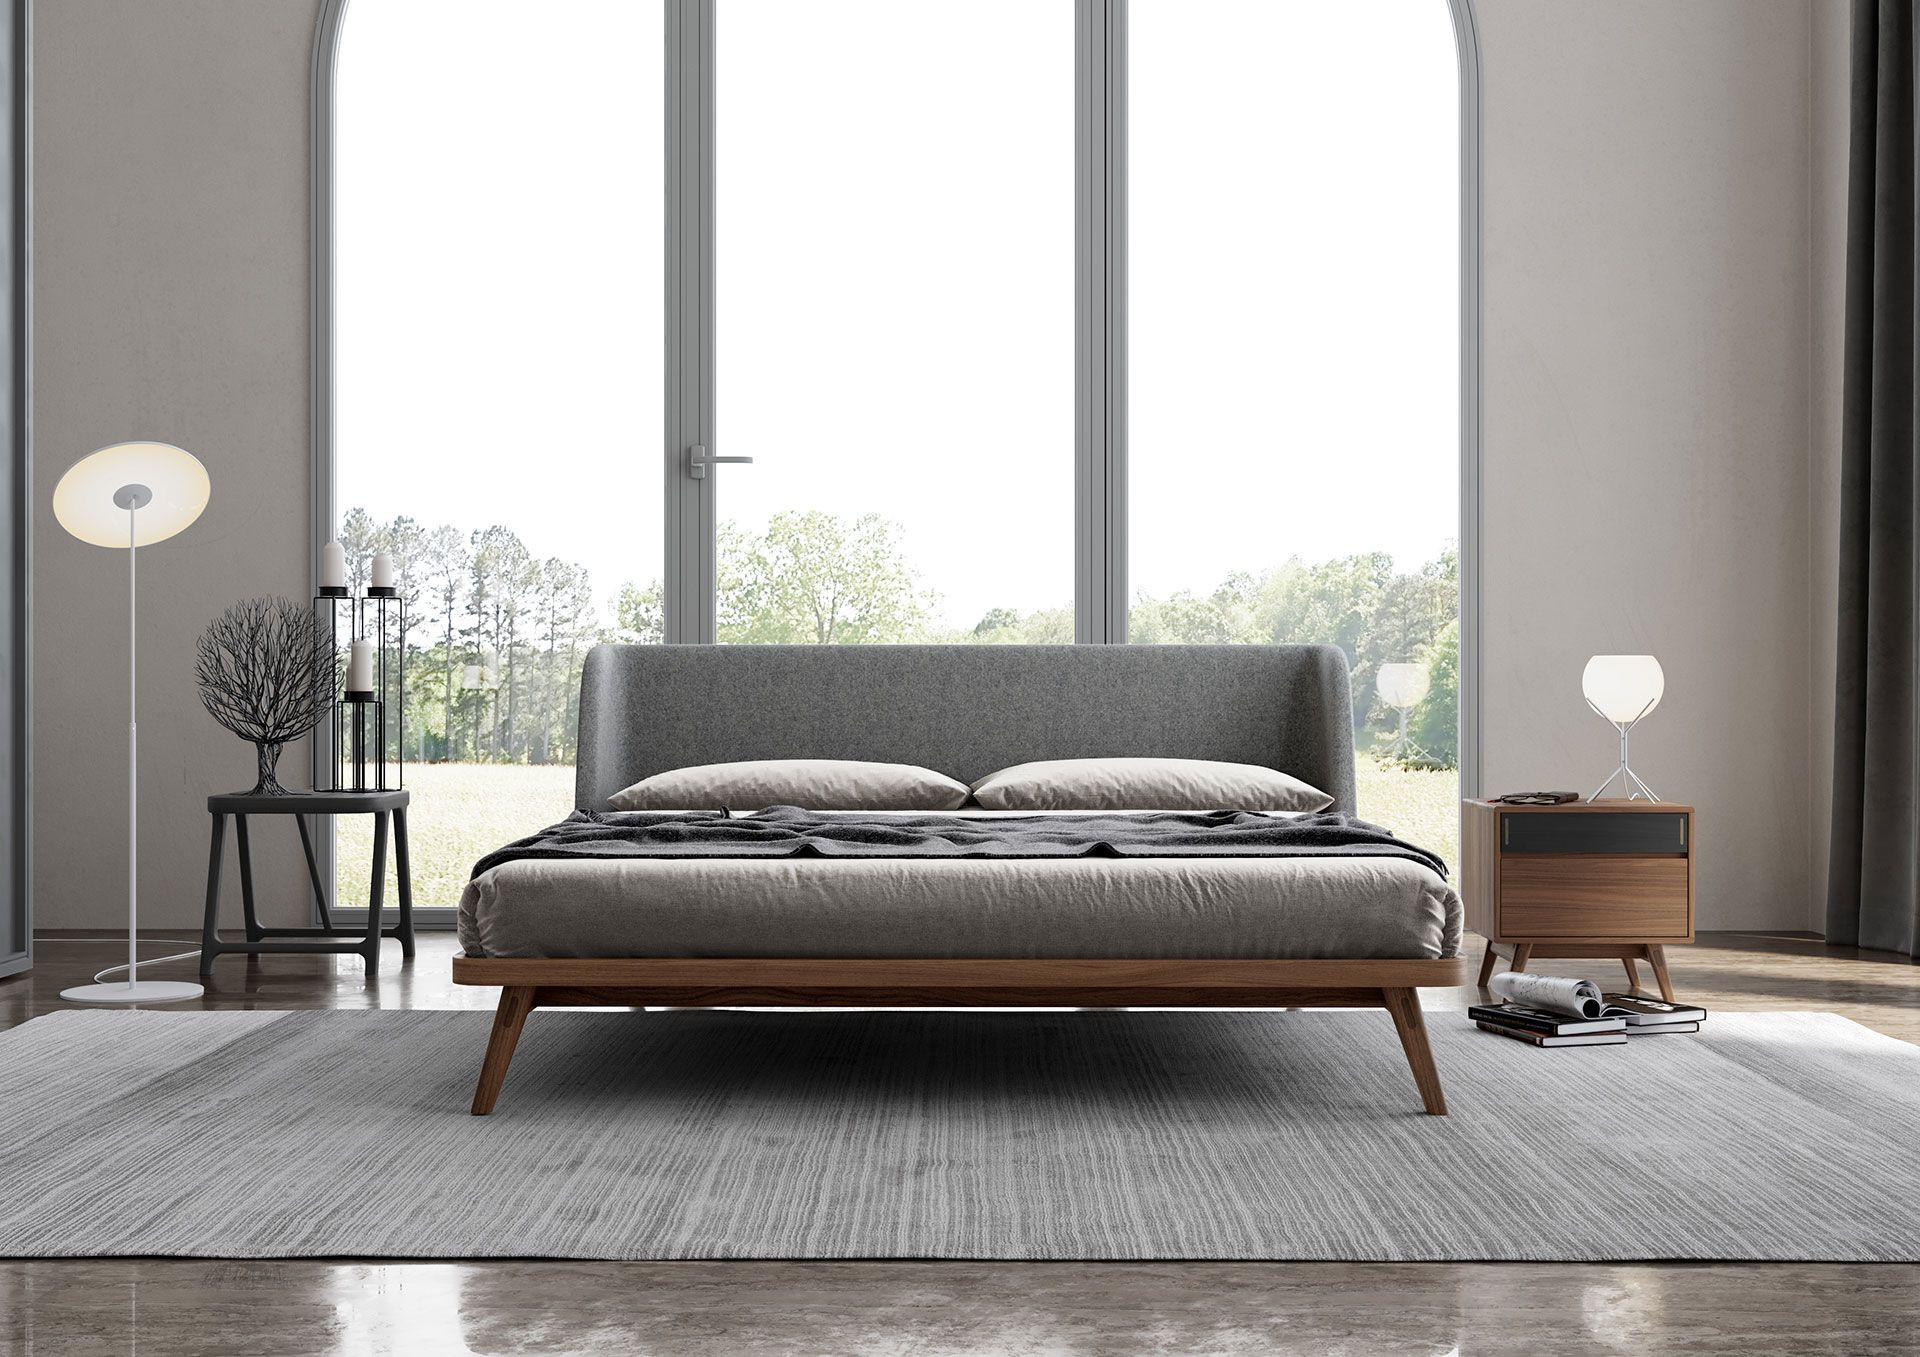 The Curved Lines Of The Haru Bed Provide A Glimpse Into Japanese